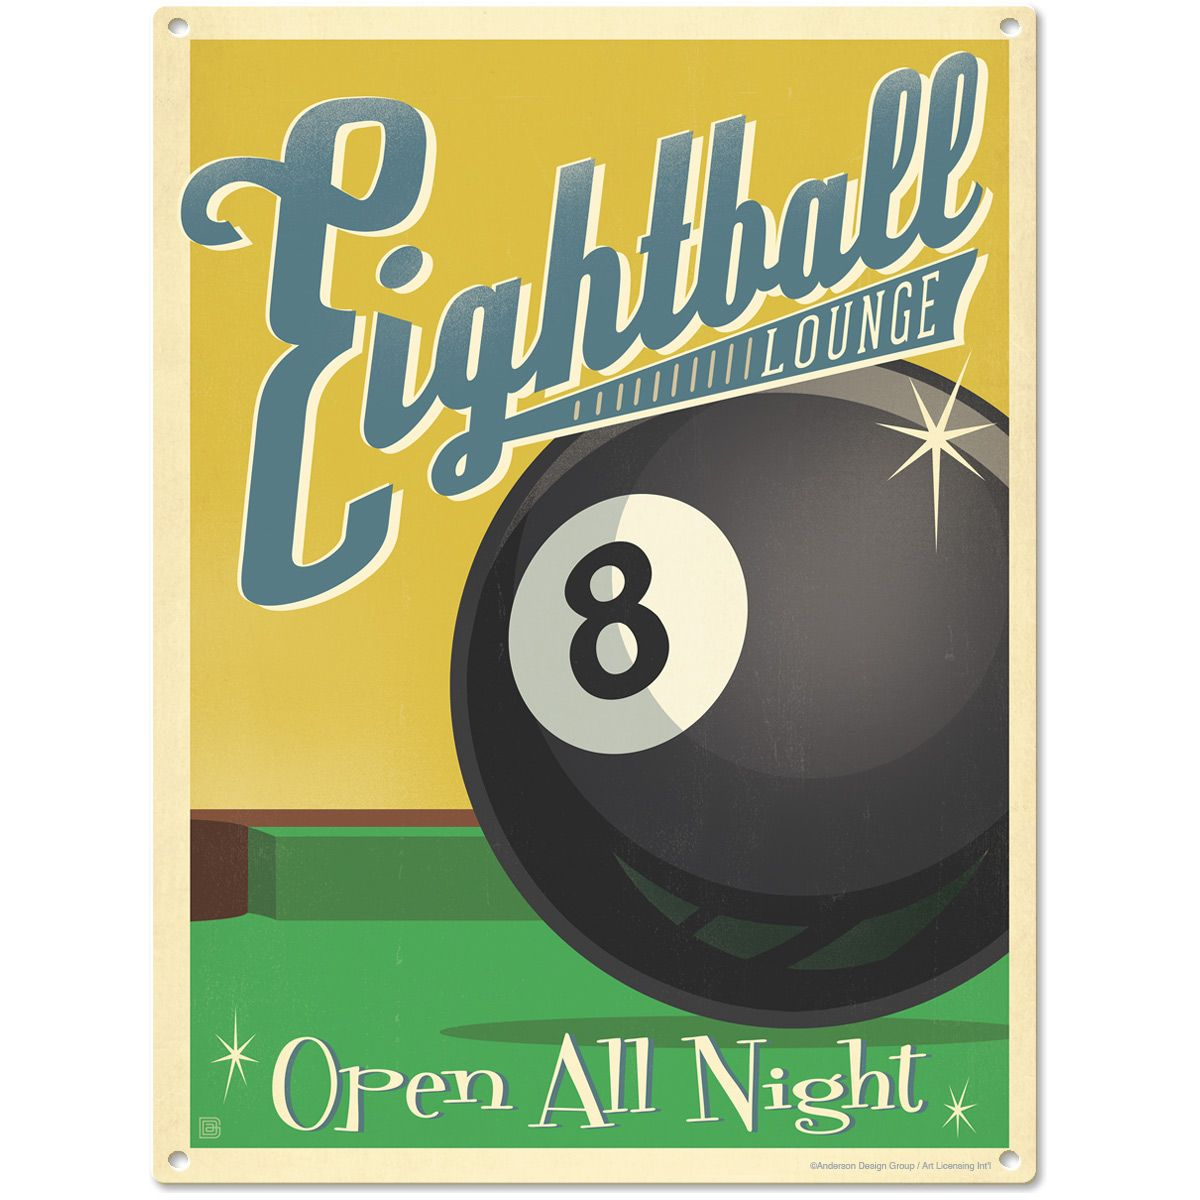 Eightball Lounge Metal Sign http://www.retroplanet.com/PROD/47024 ...